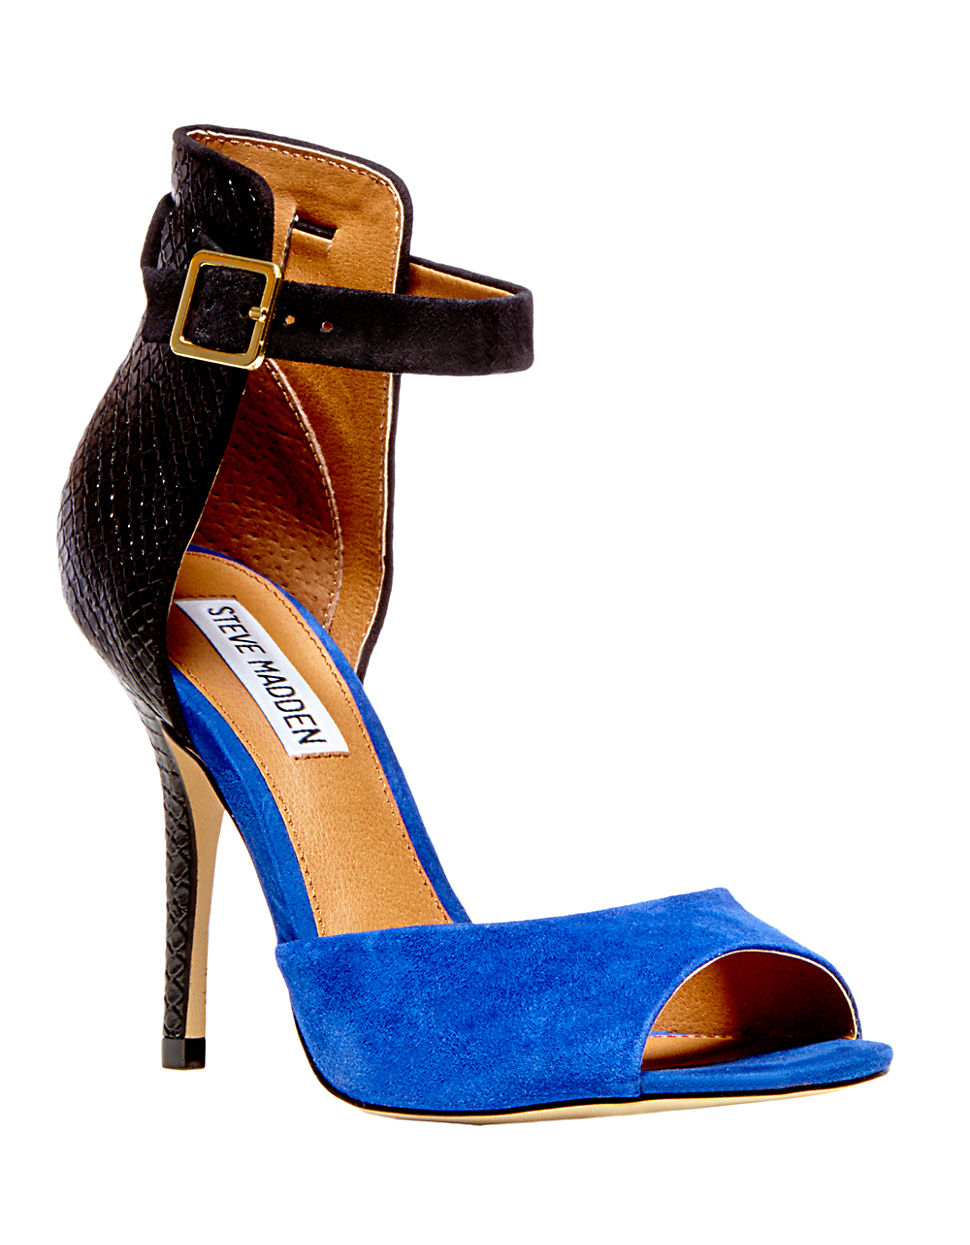 094e0709147 Steve Madden Step Out High-Heel Sandals in Blue - Lyst